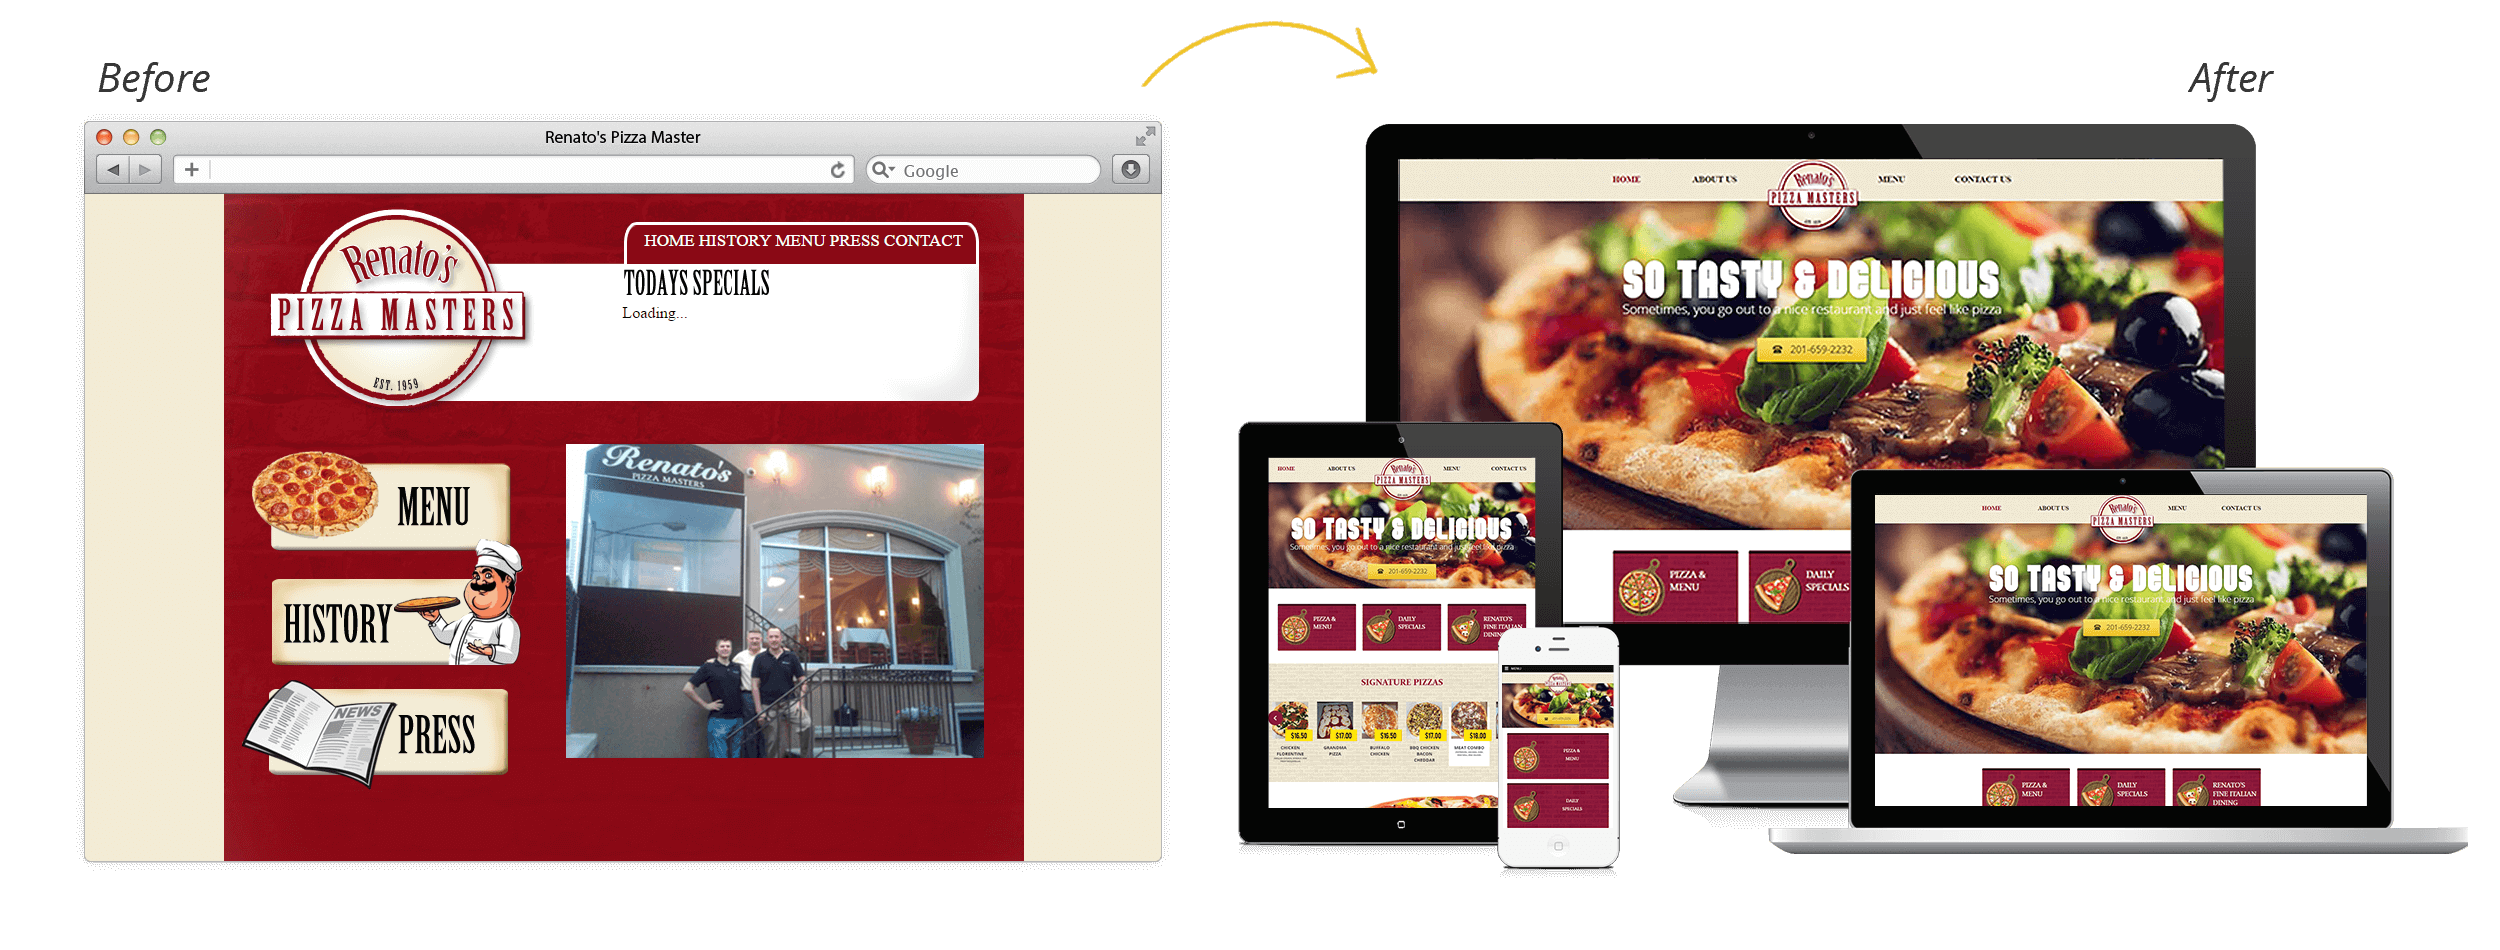 Renato's Pizza Masters Launches New Website!